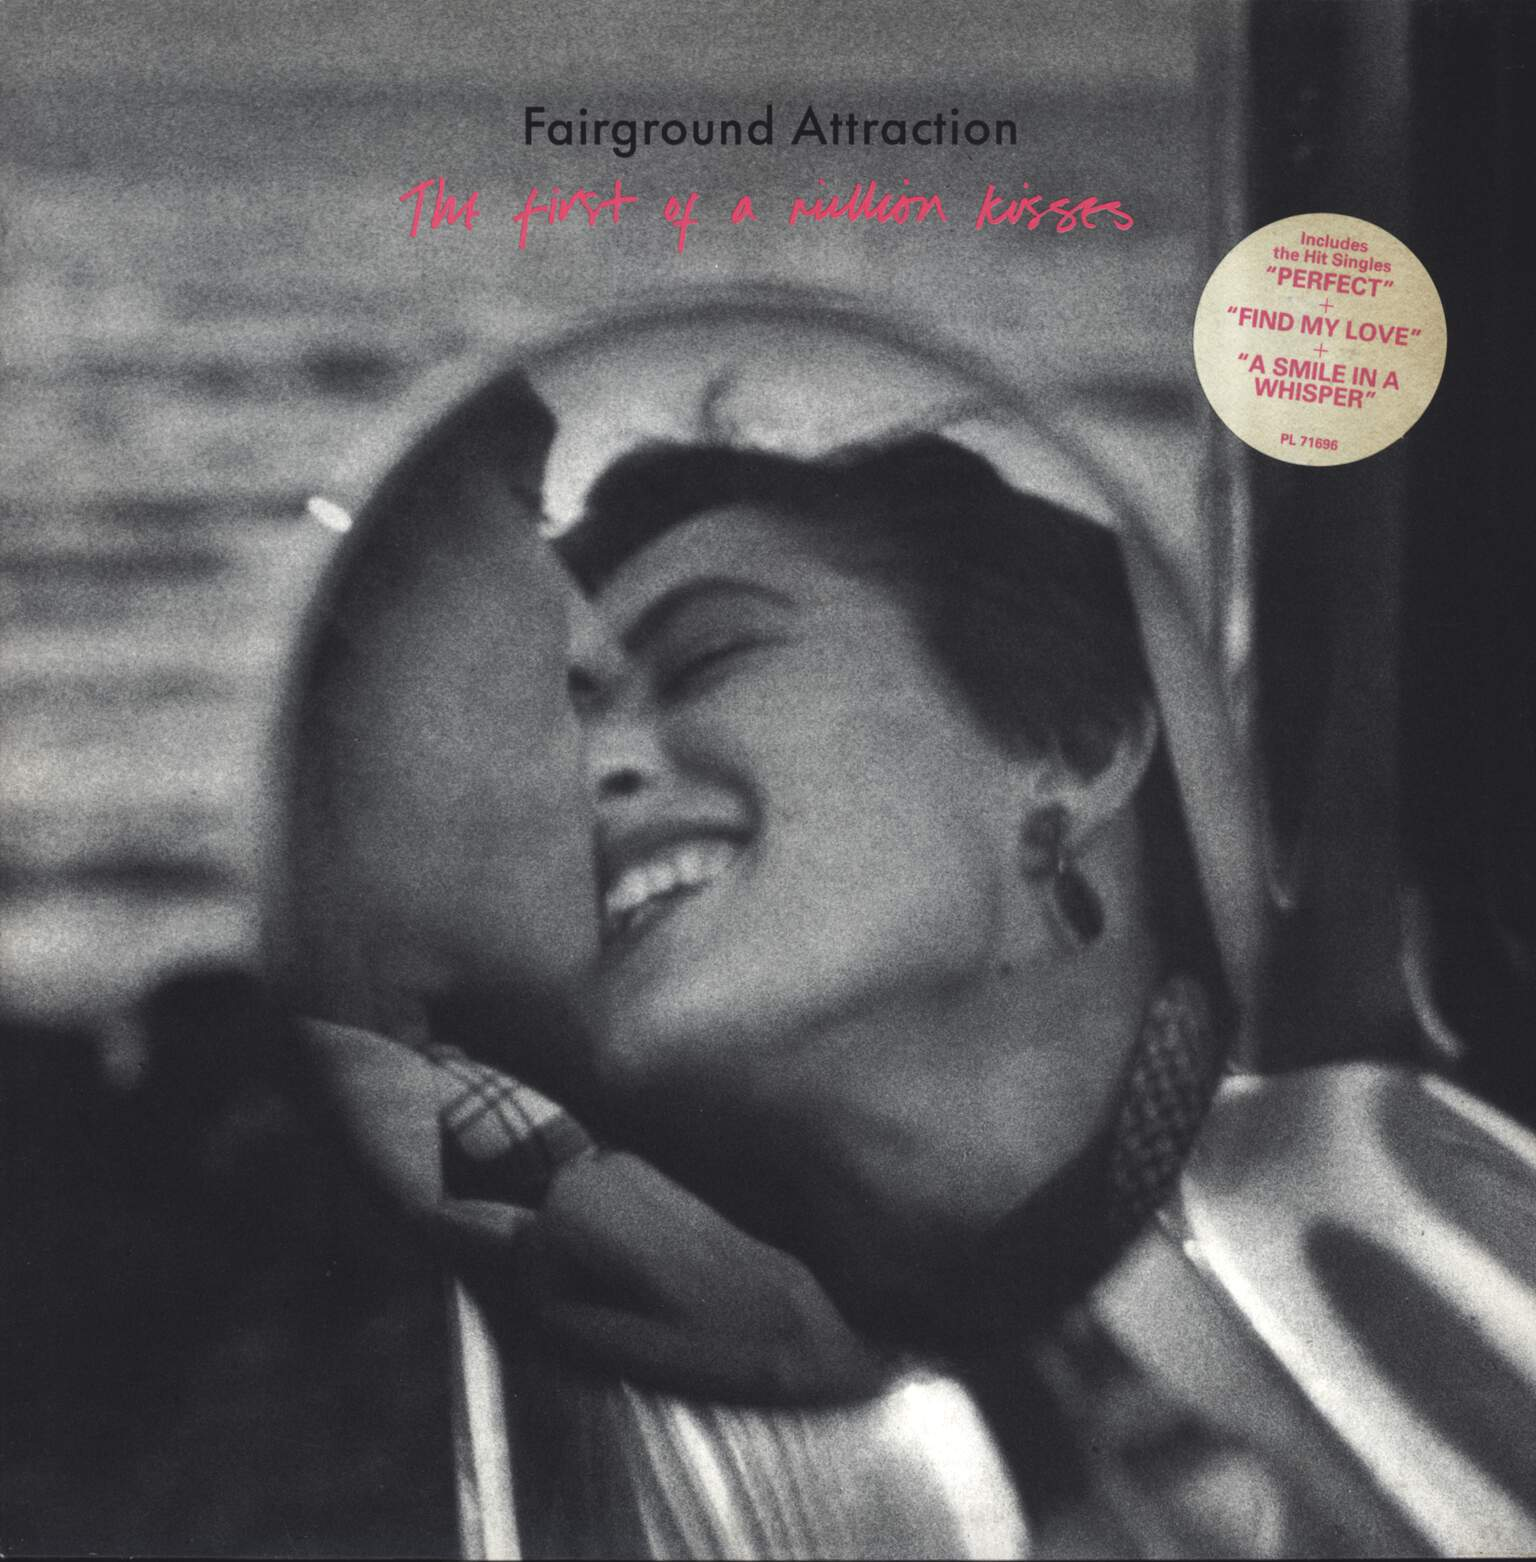 Fairground Attraction: The First Of A Million Kisses, LP (Vinyl)